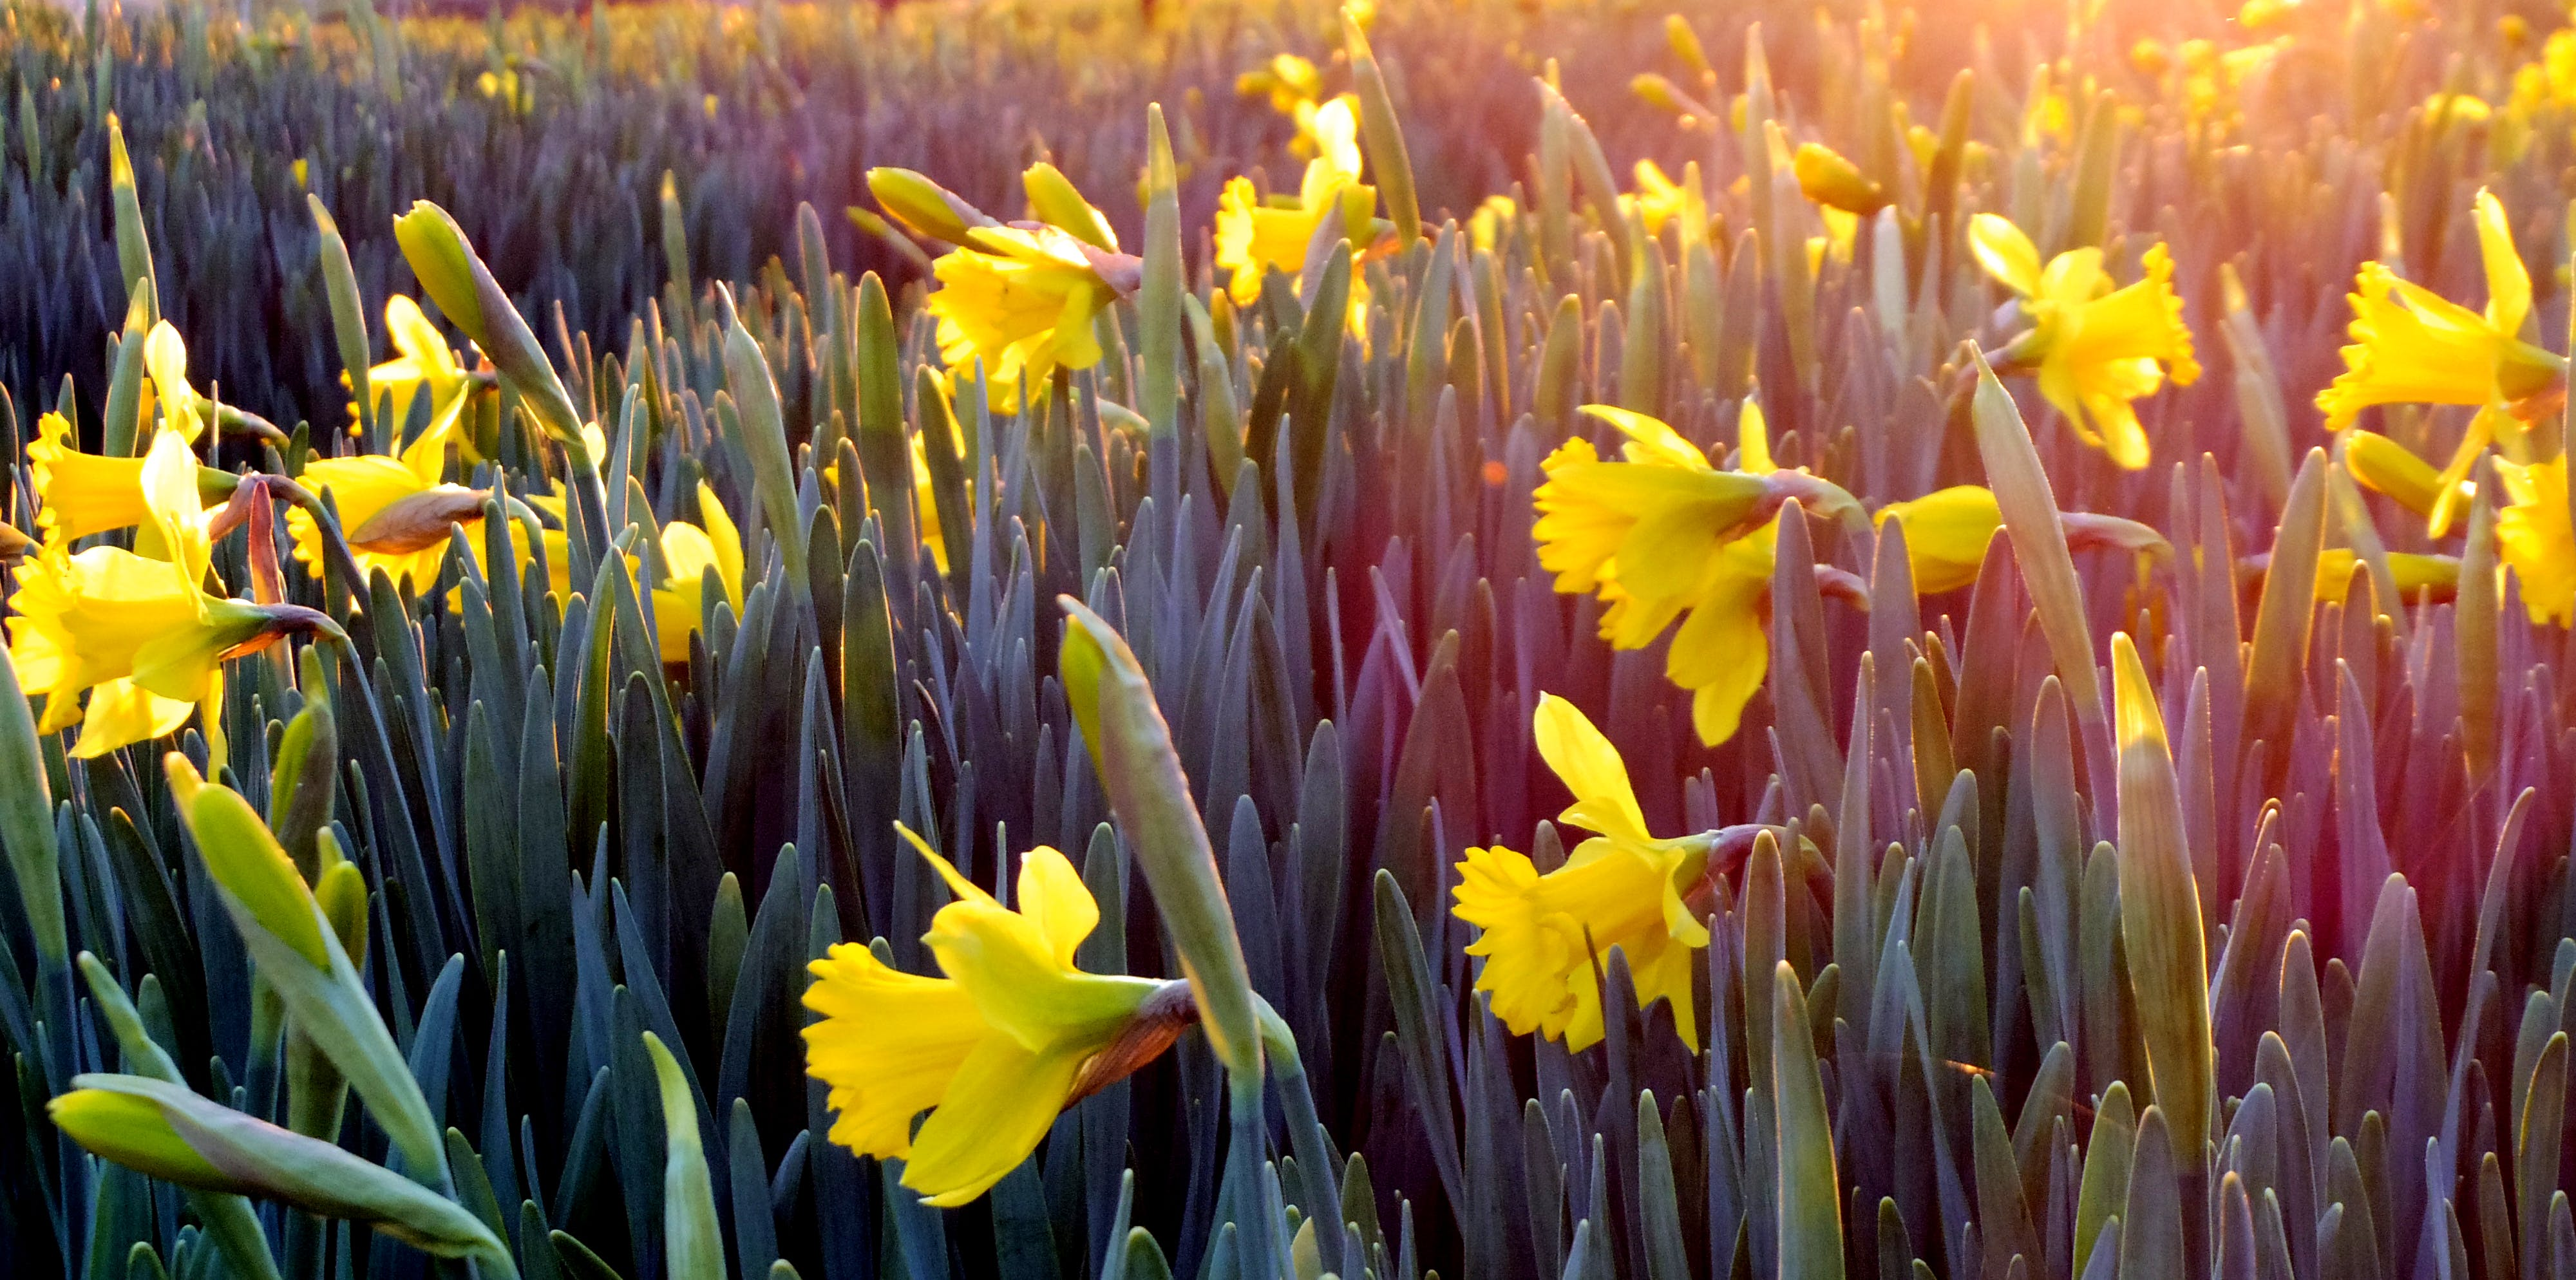 Landscape Photography of Field Covered With Yellow Flowers